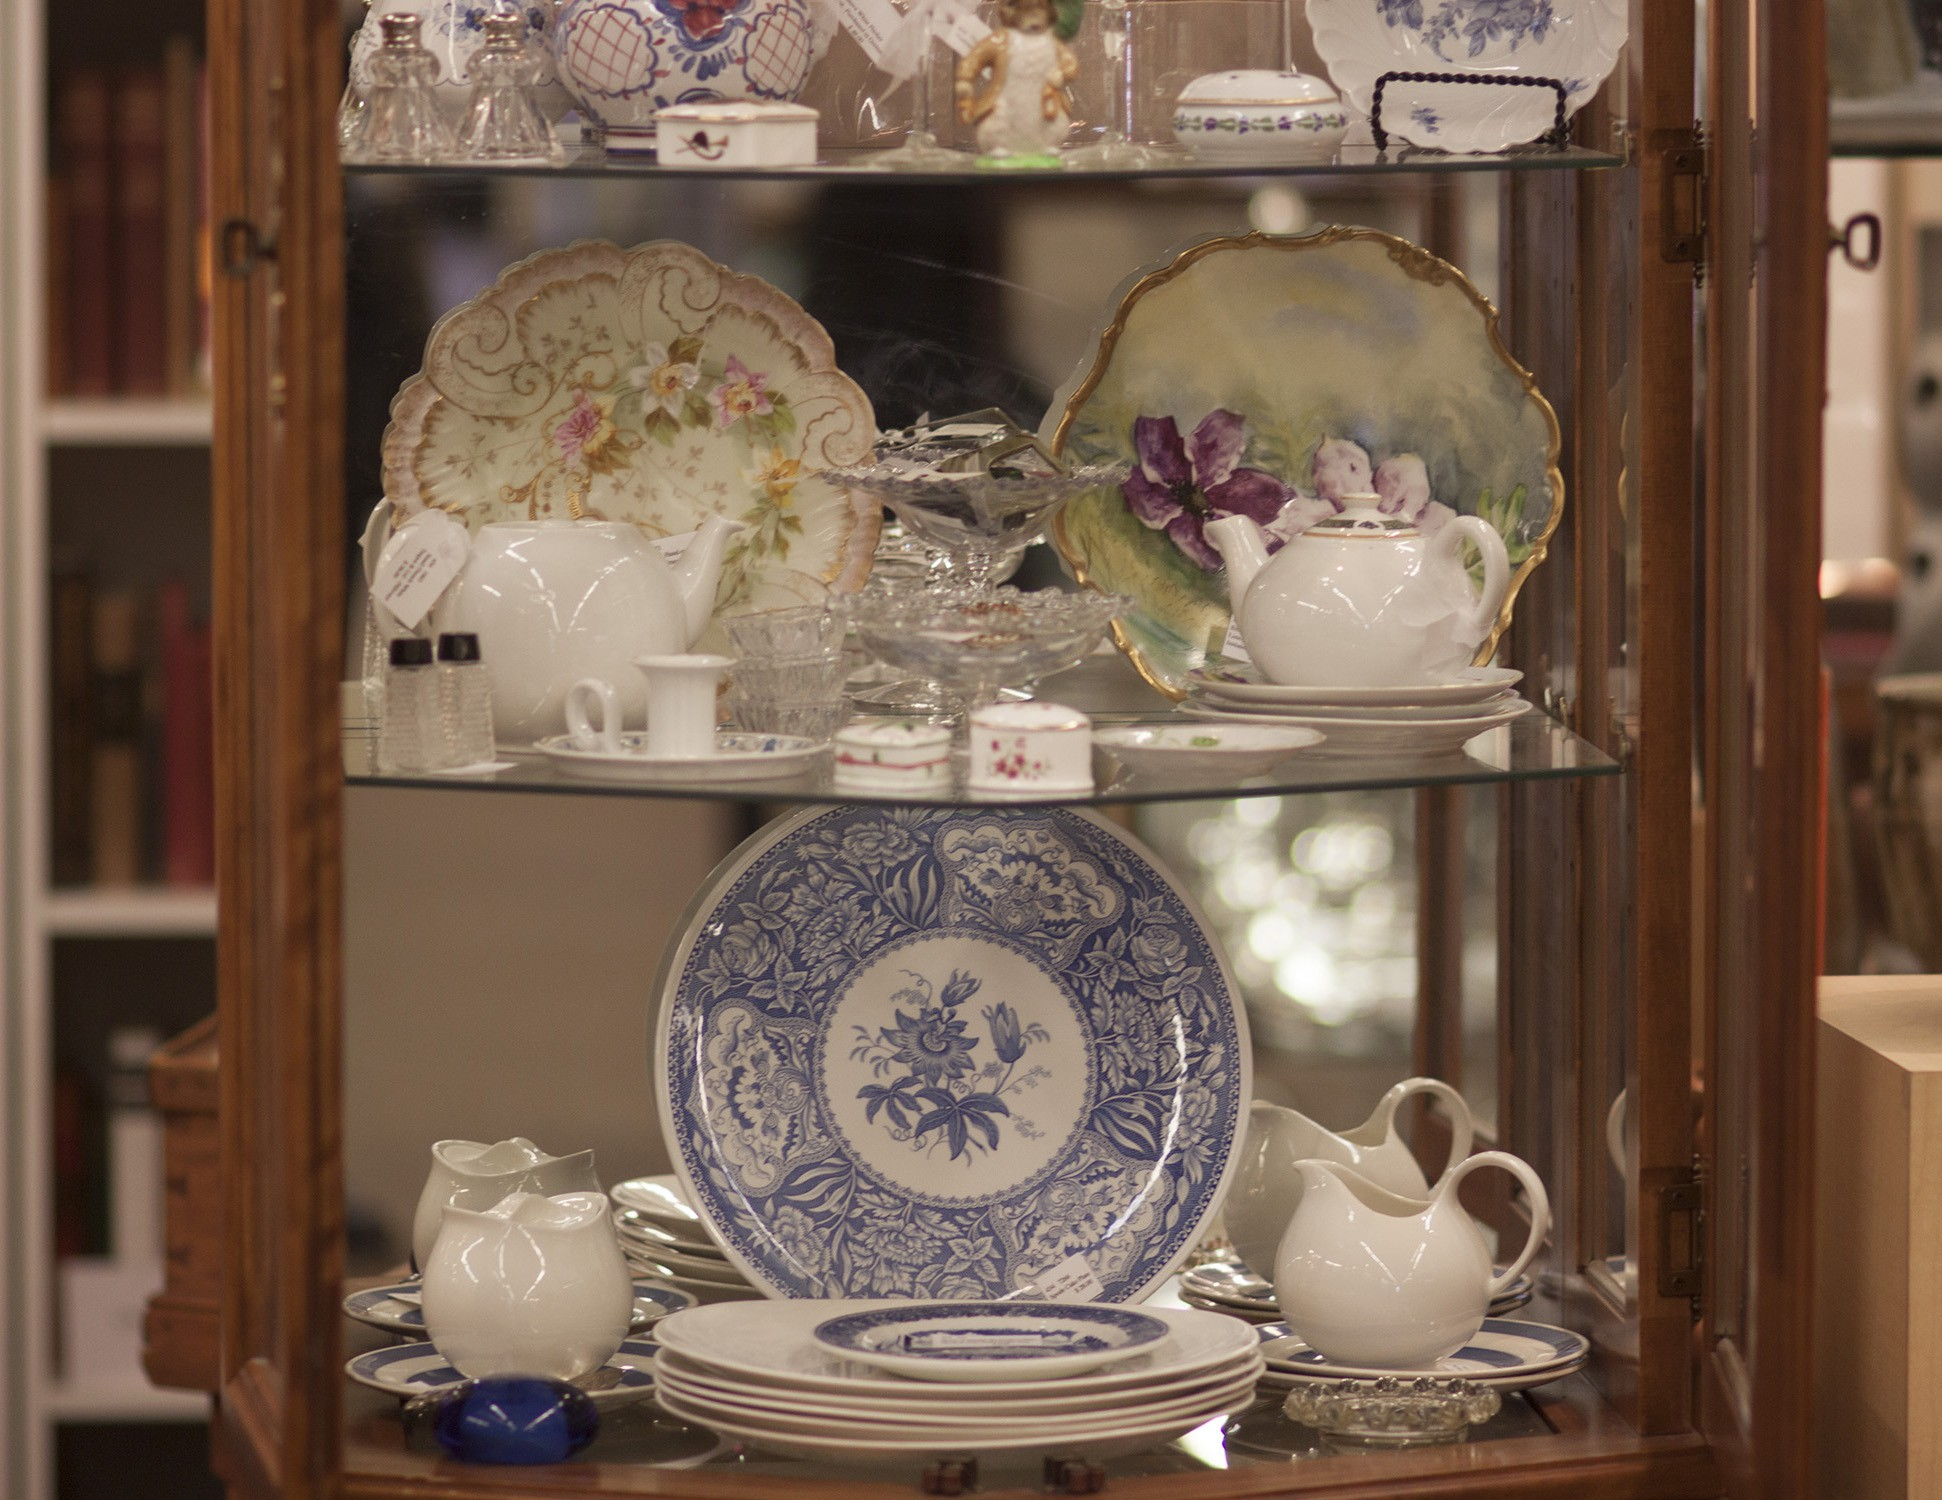 Expert said the antiques industry is declining, and younger generations aren't buying the goods.